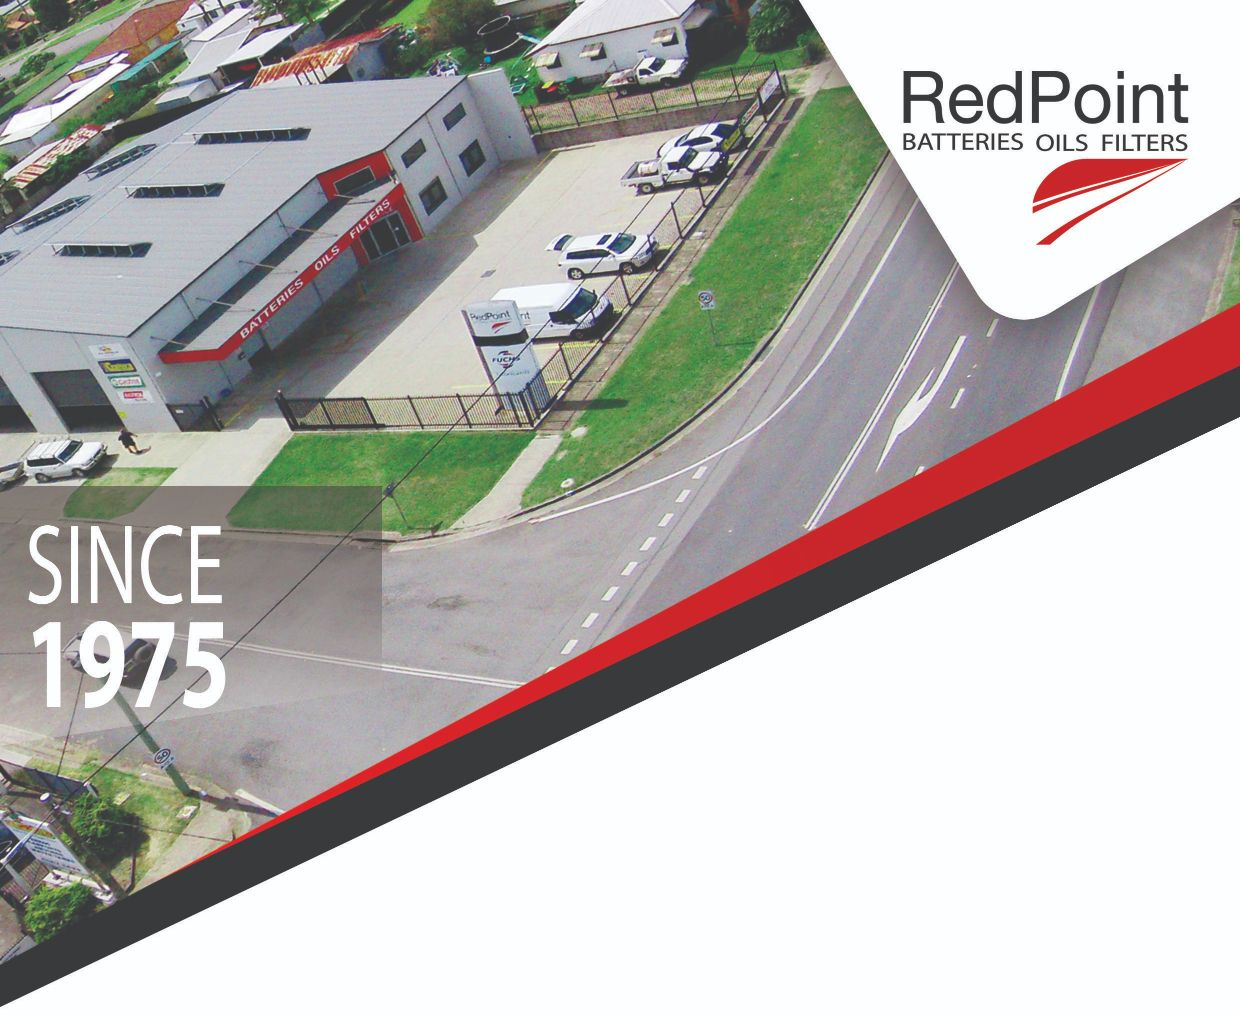 RedPoint Head Office